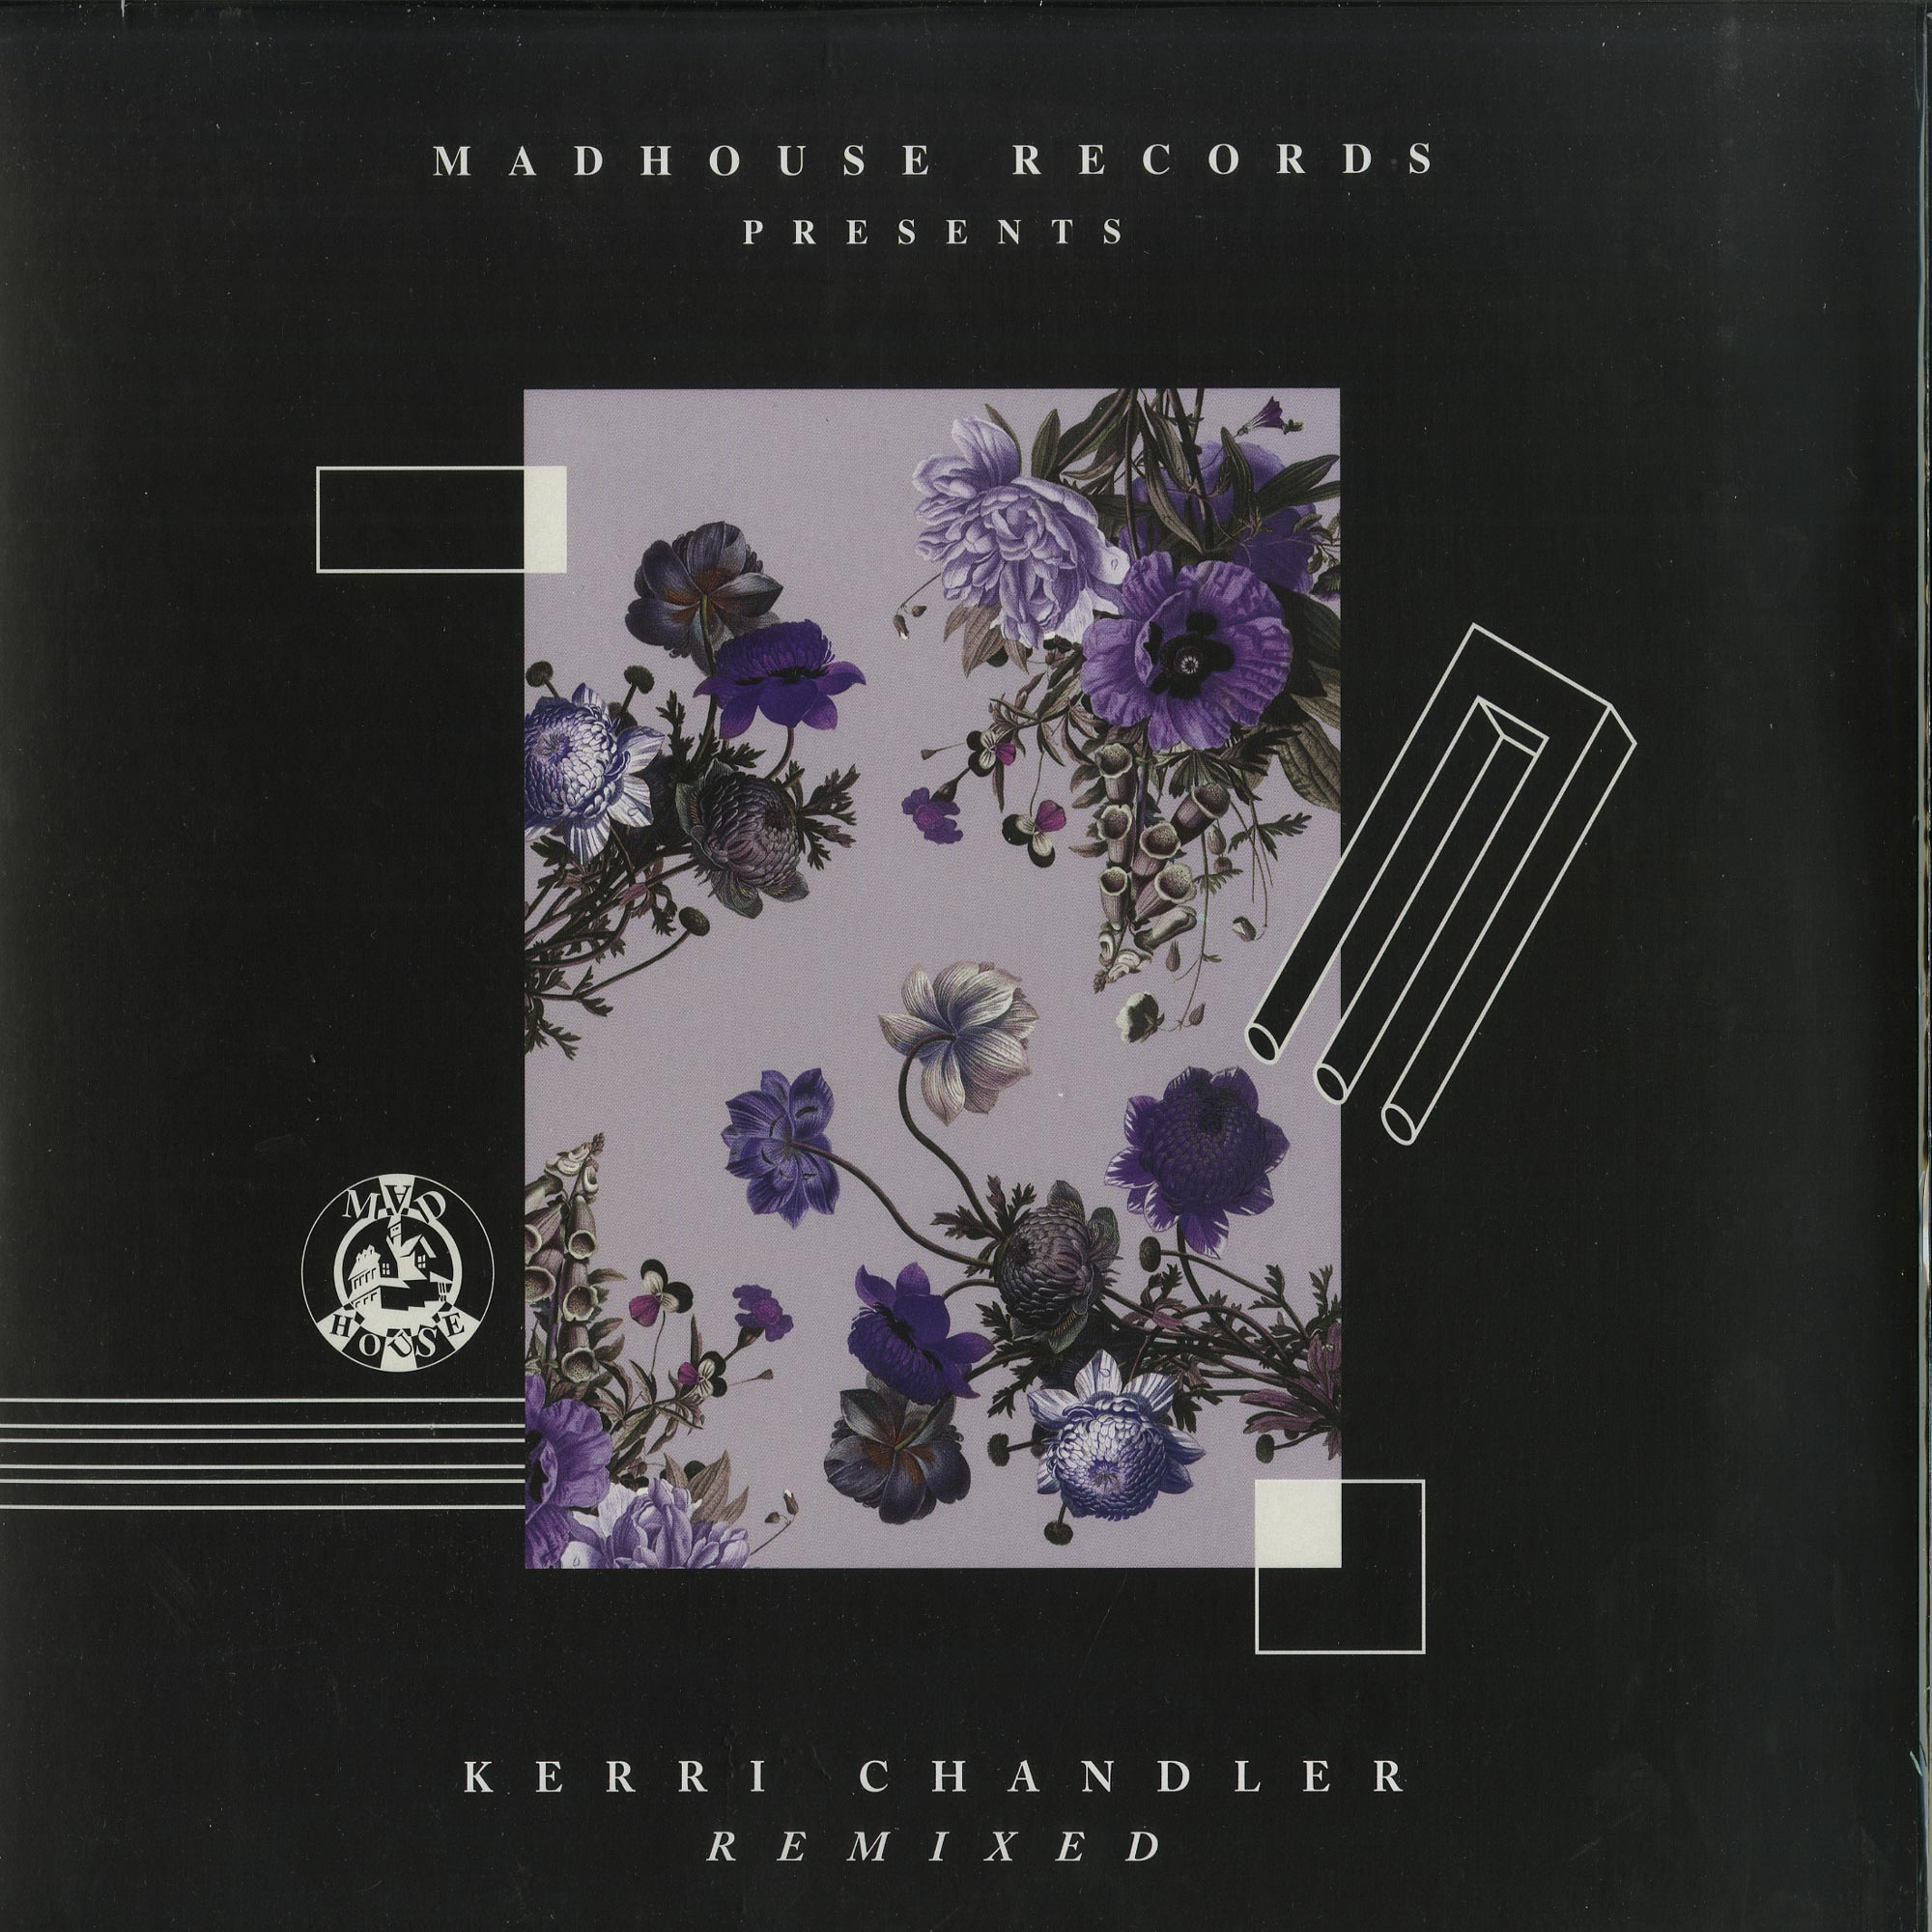 Kerri Chandler / Matrix / Dreamer G - MADHOUSE PRESENTS KERRI CHANDLER REMIXED